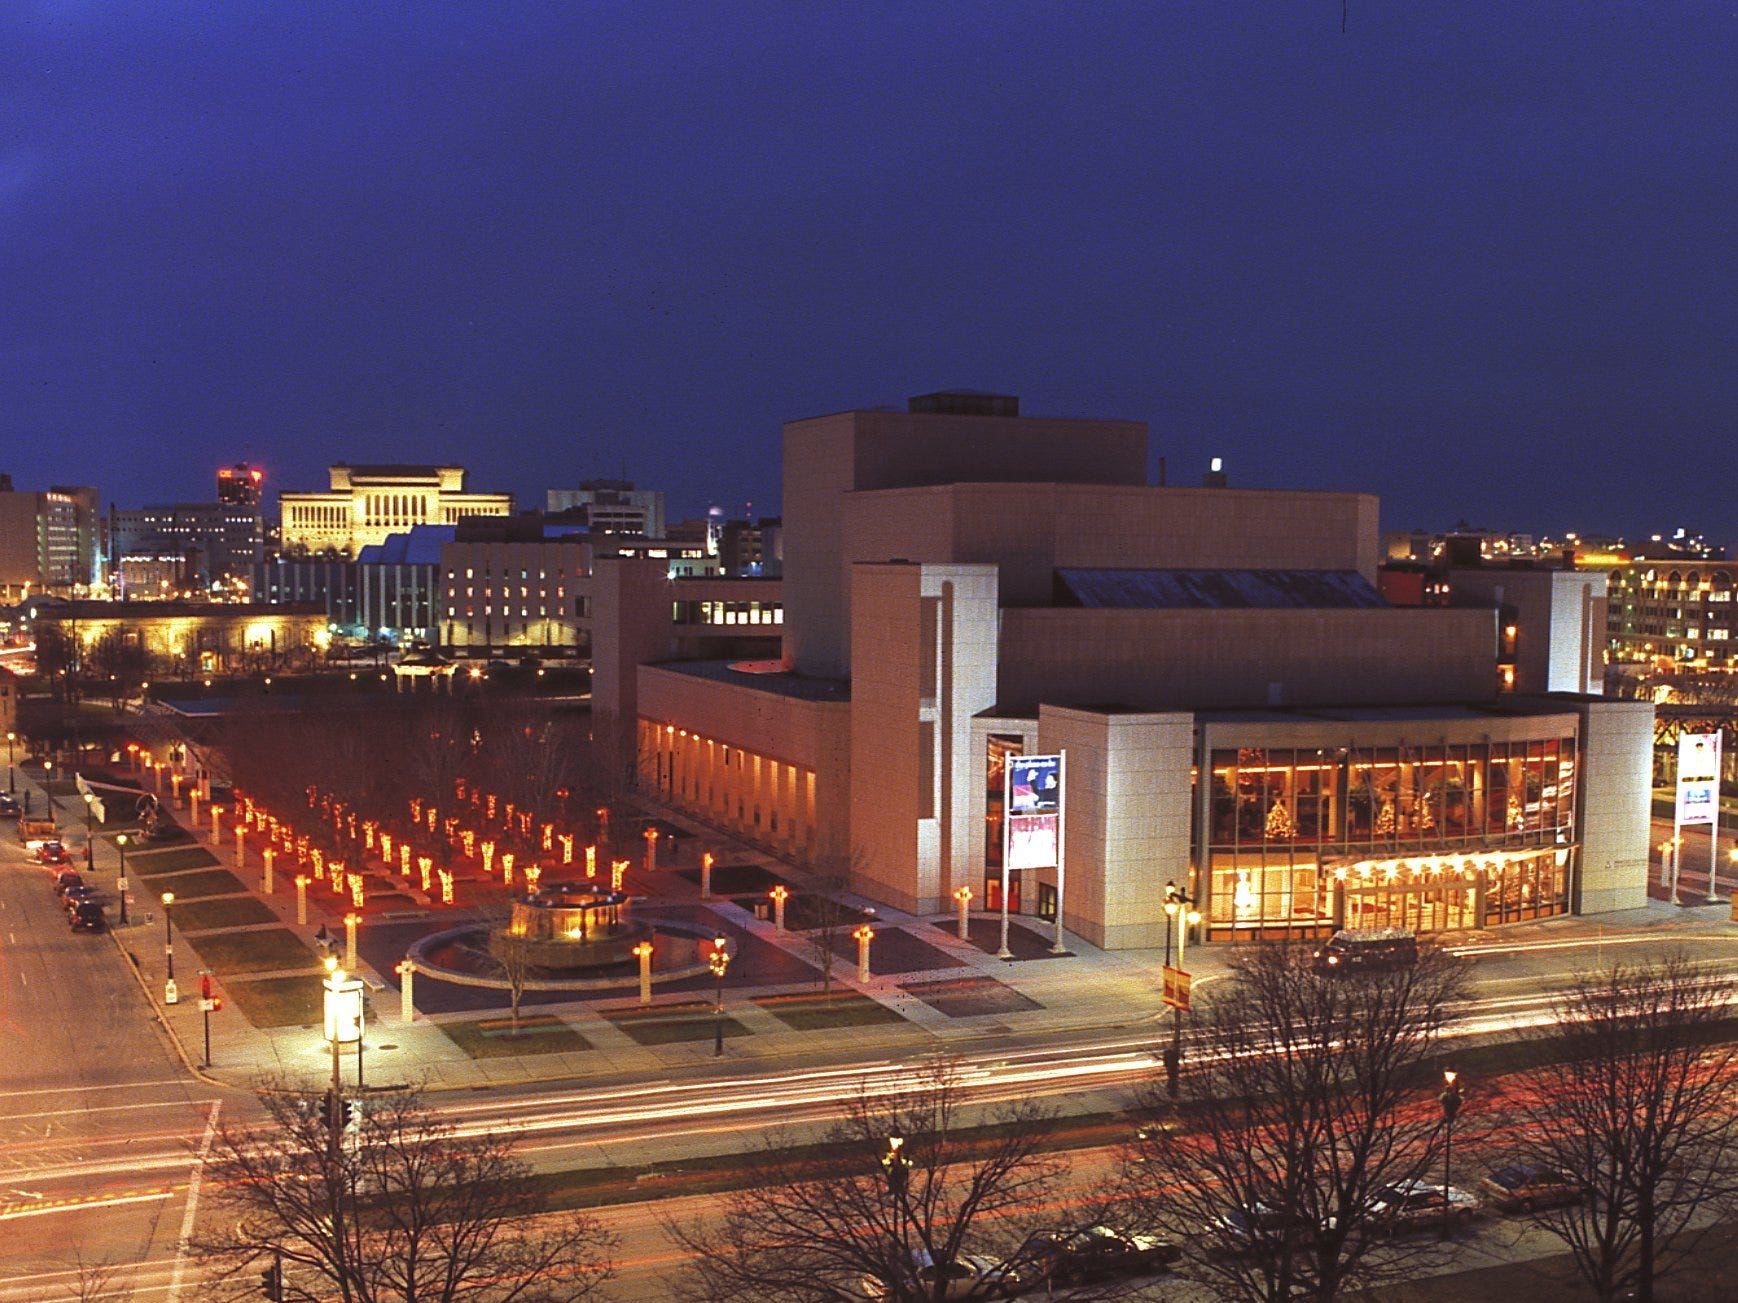 MARCUS CENTER FOR THE PERFORMING ARTS PREFERRED EVENING PHOTO